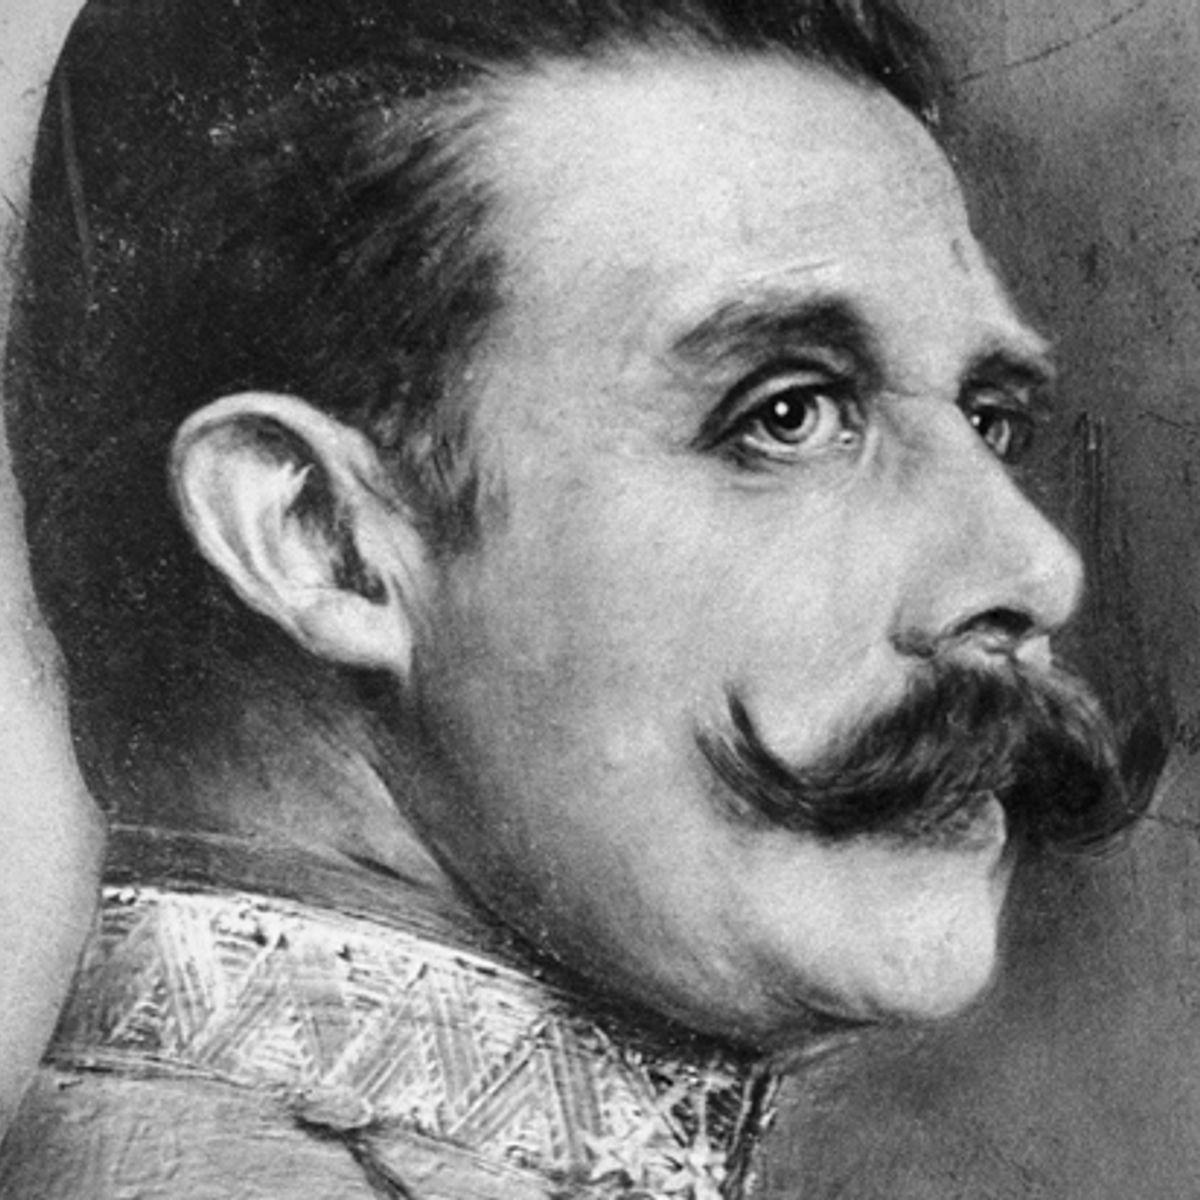 Ghosts of an assassination: The chaotic history of Franz Ferdinand's demise